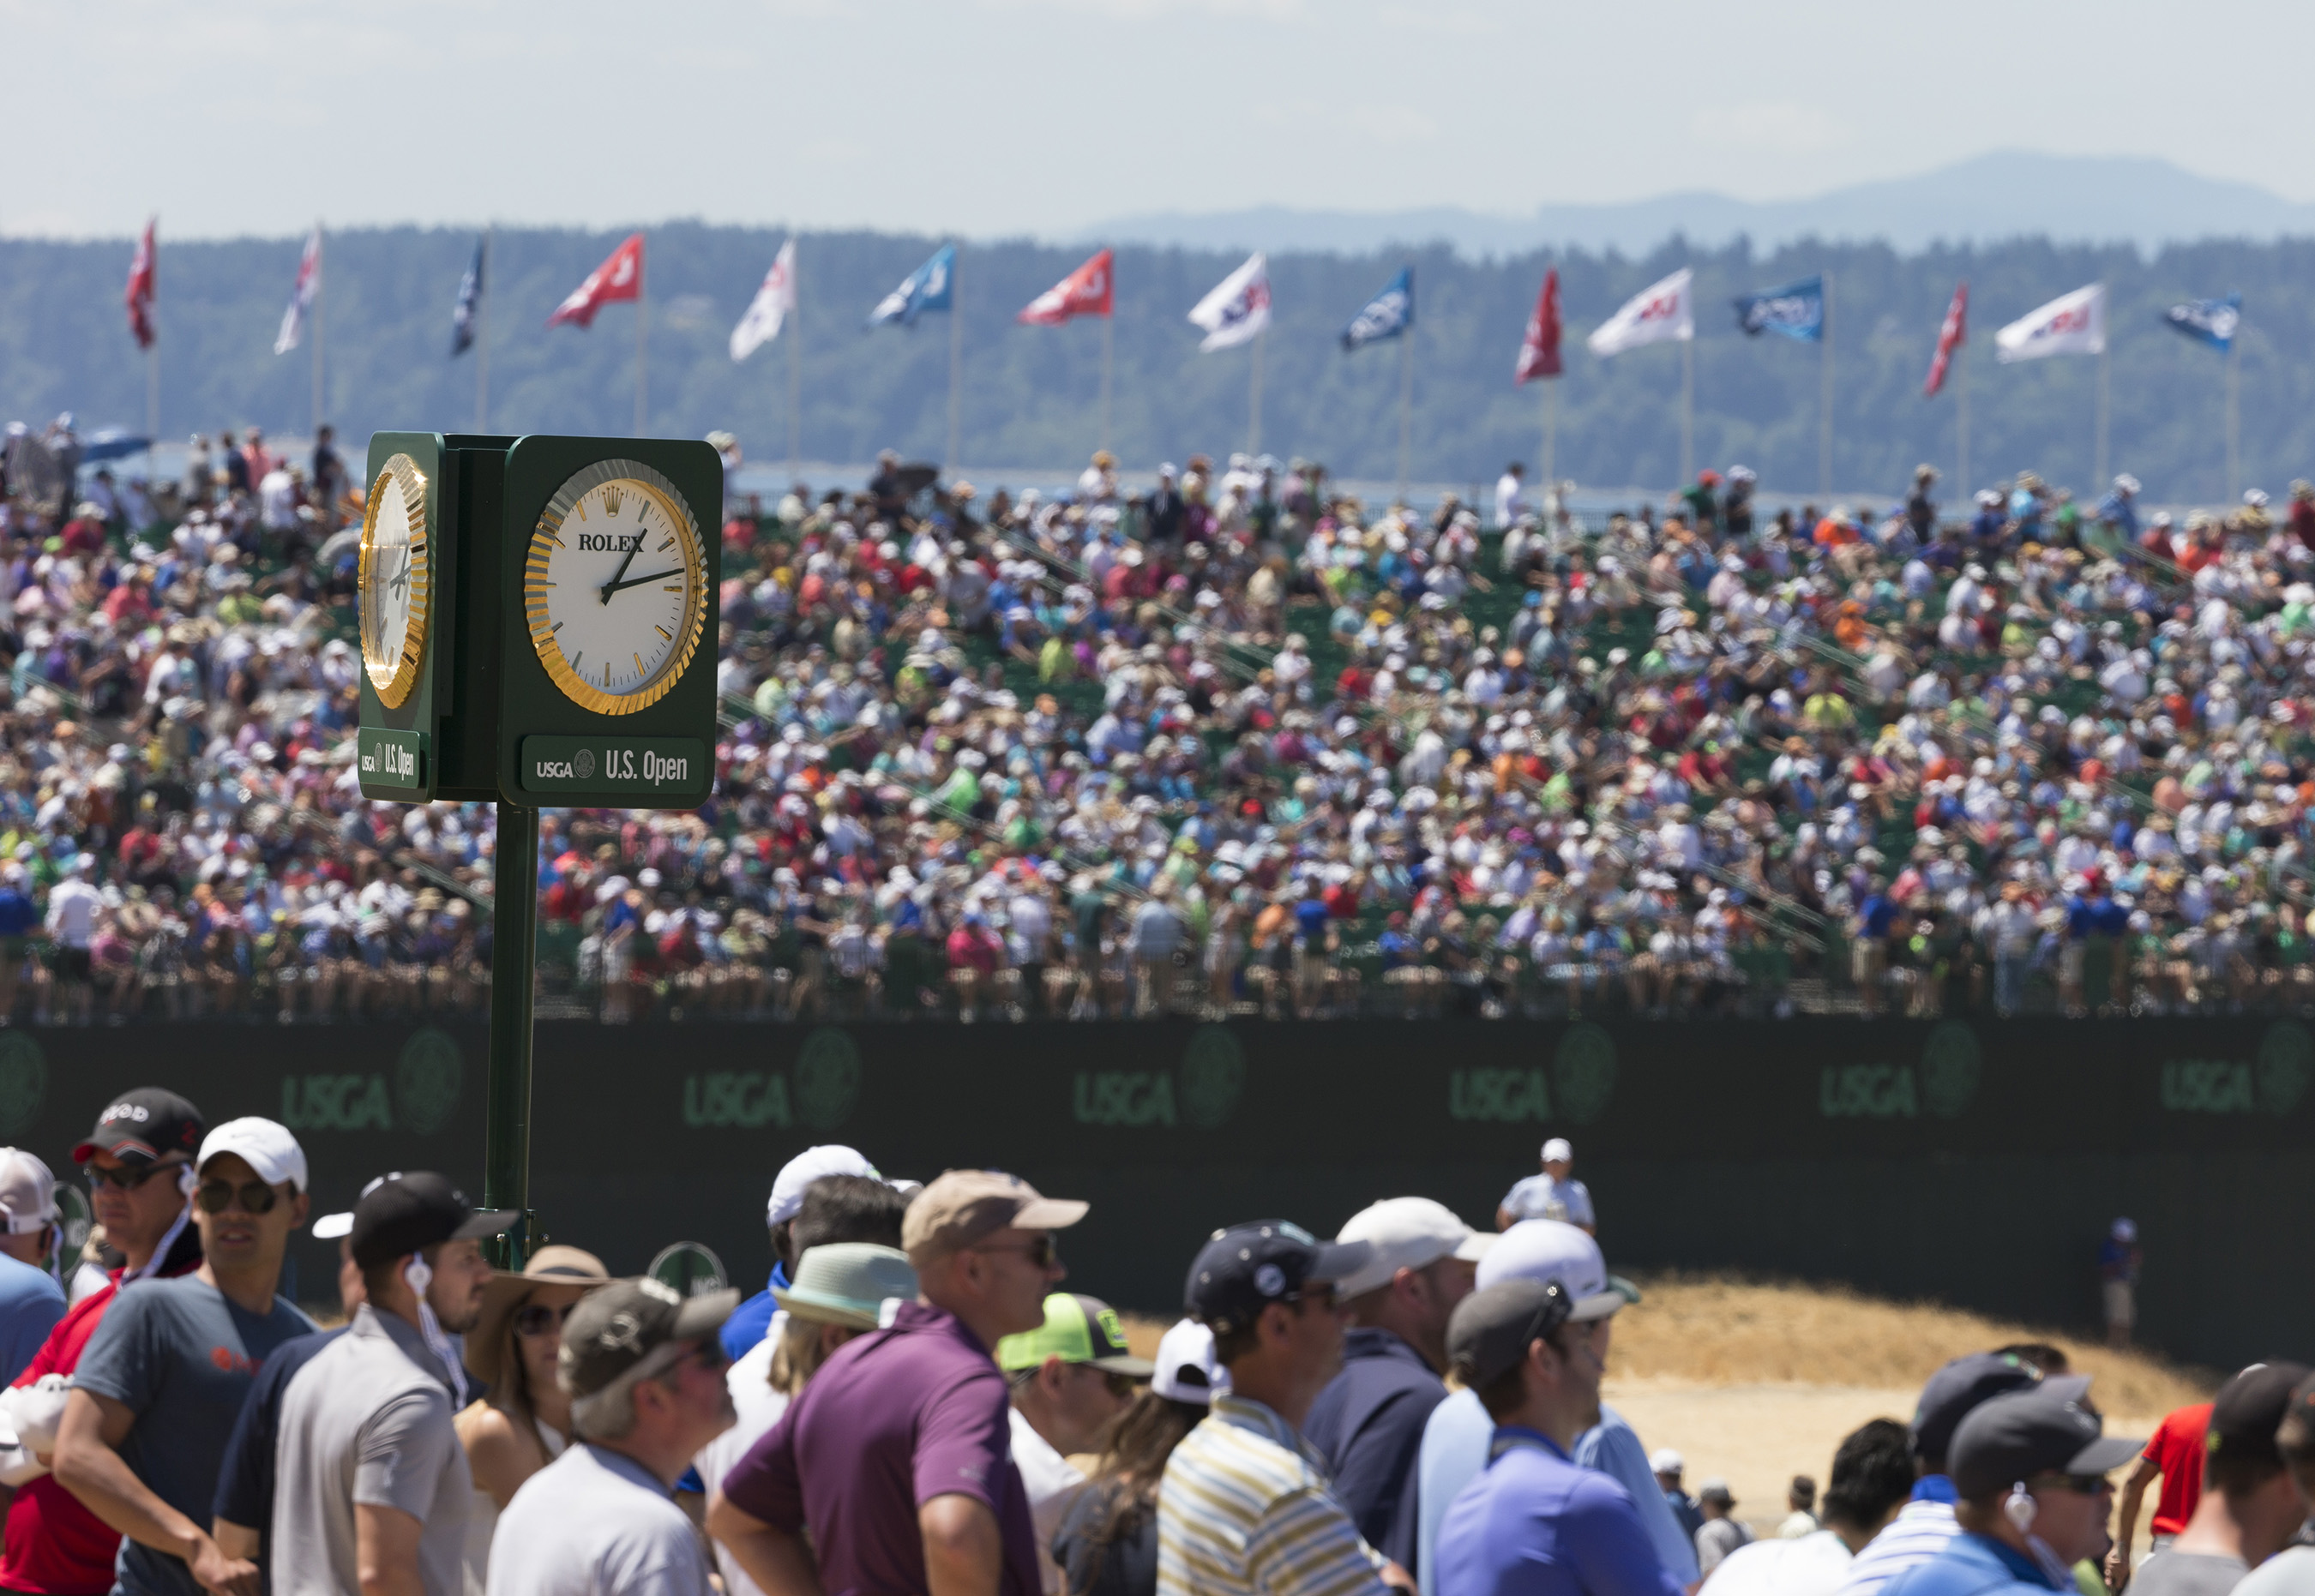 Rolex is the official timekeeper of the UGSA and its championships